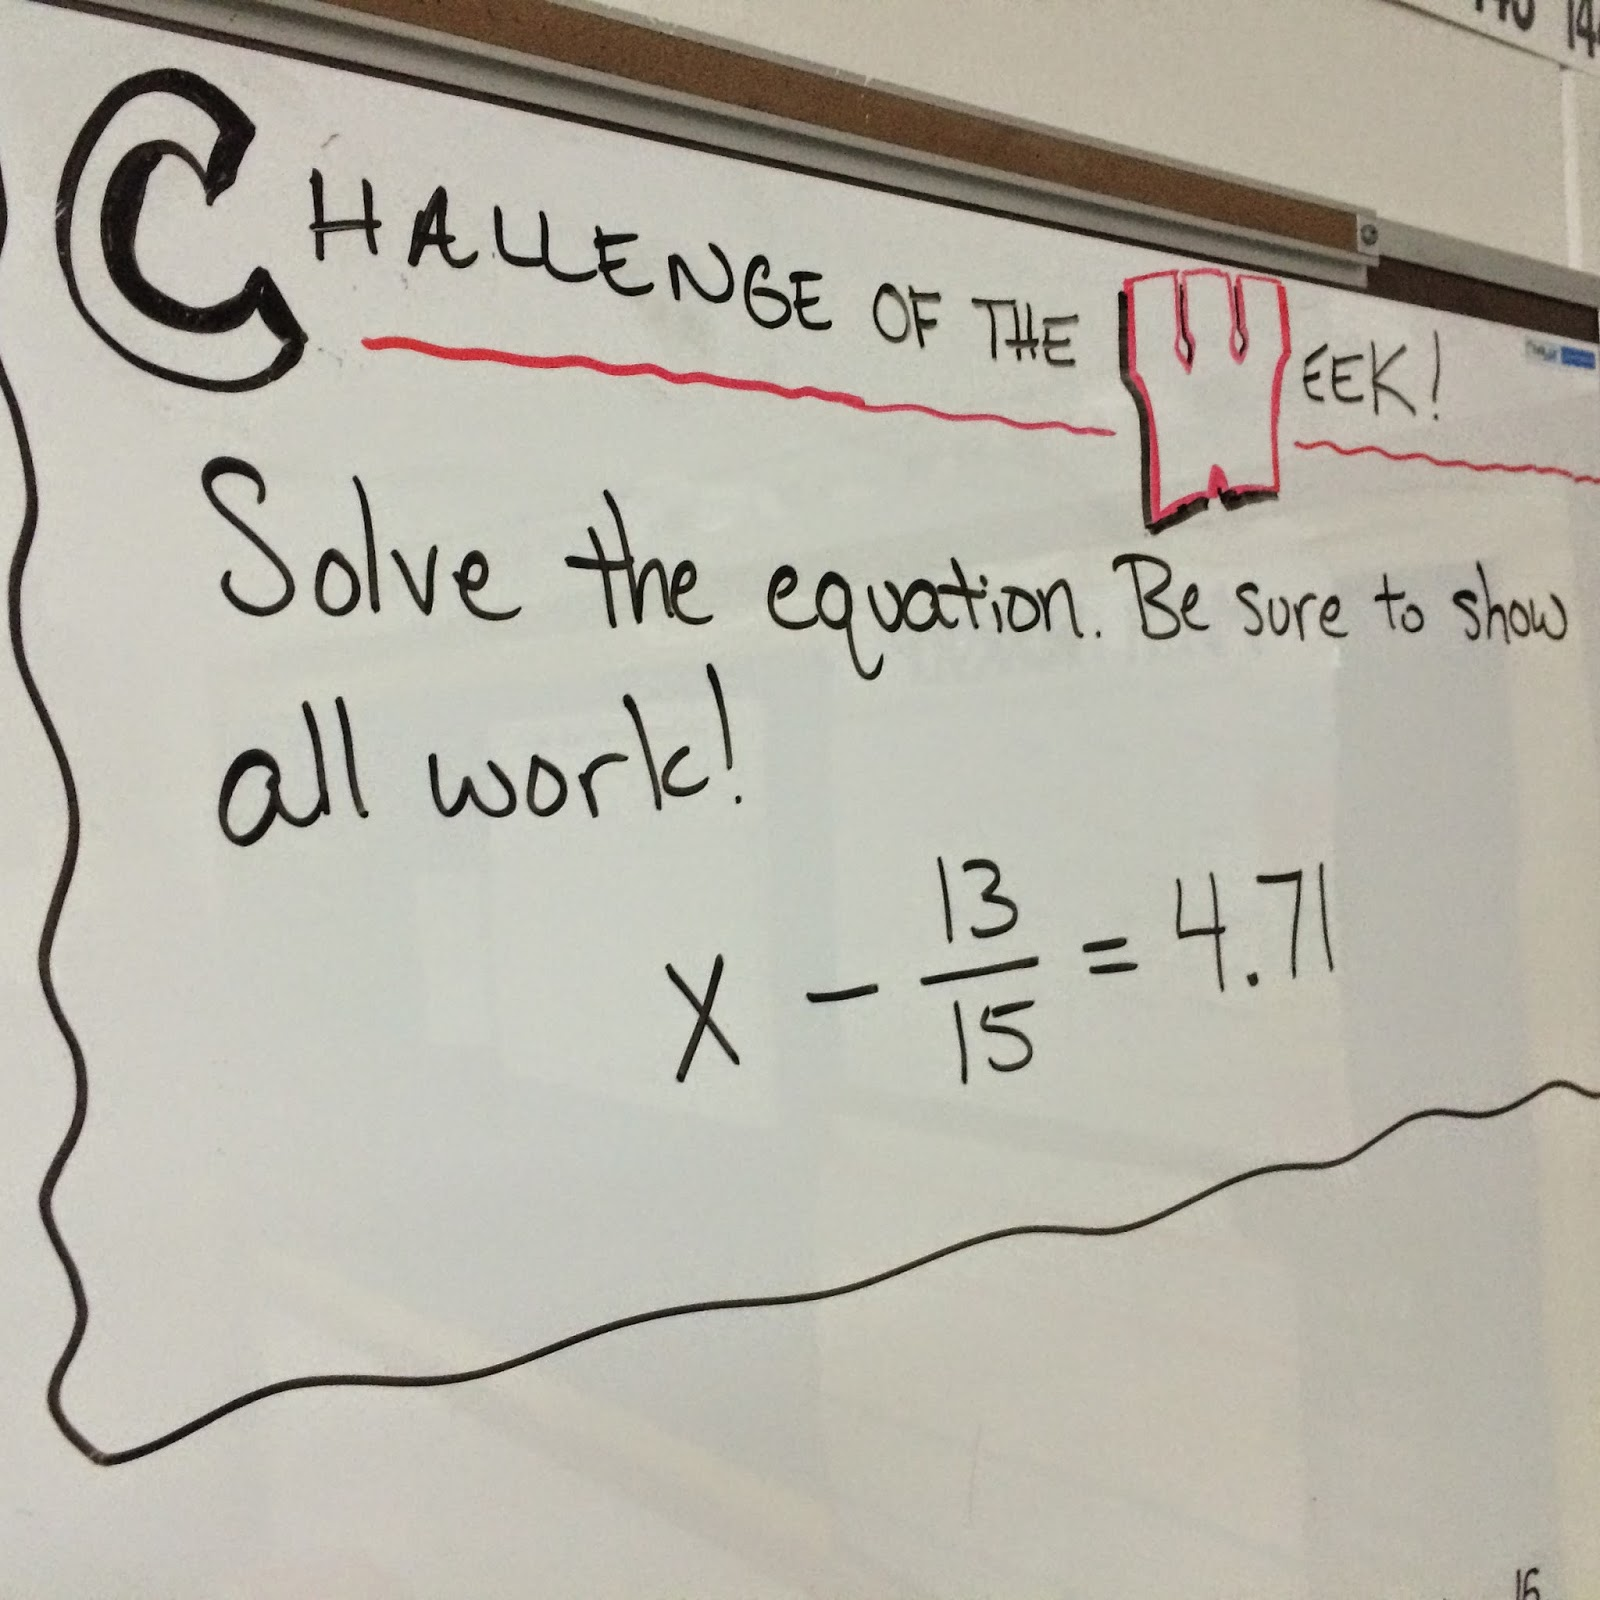 hight resolution of Middle School Math Man: Challenge of the Week